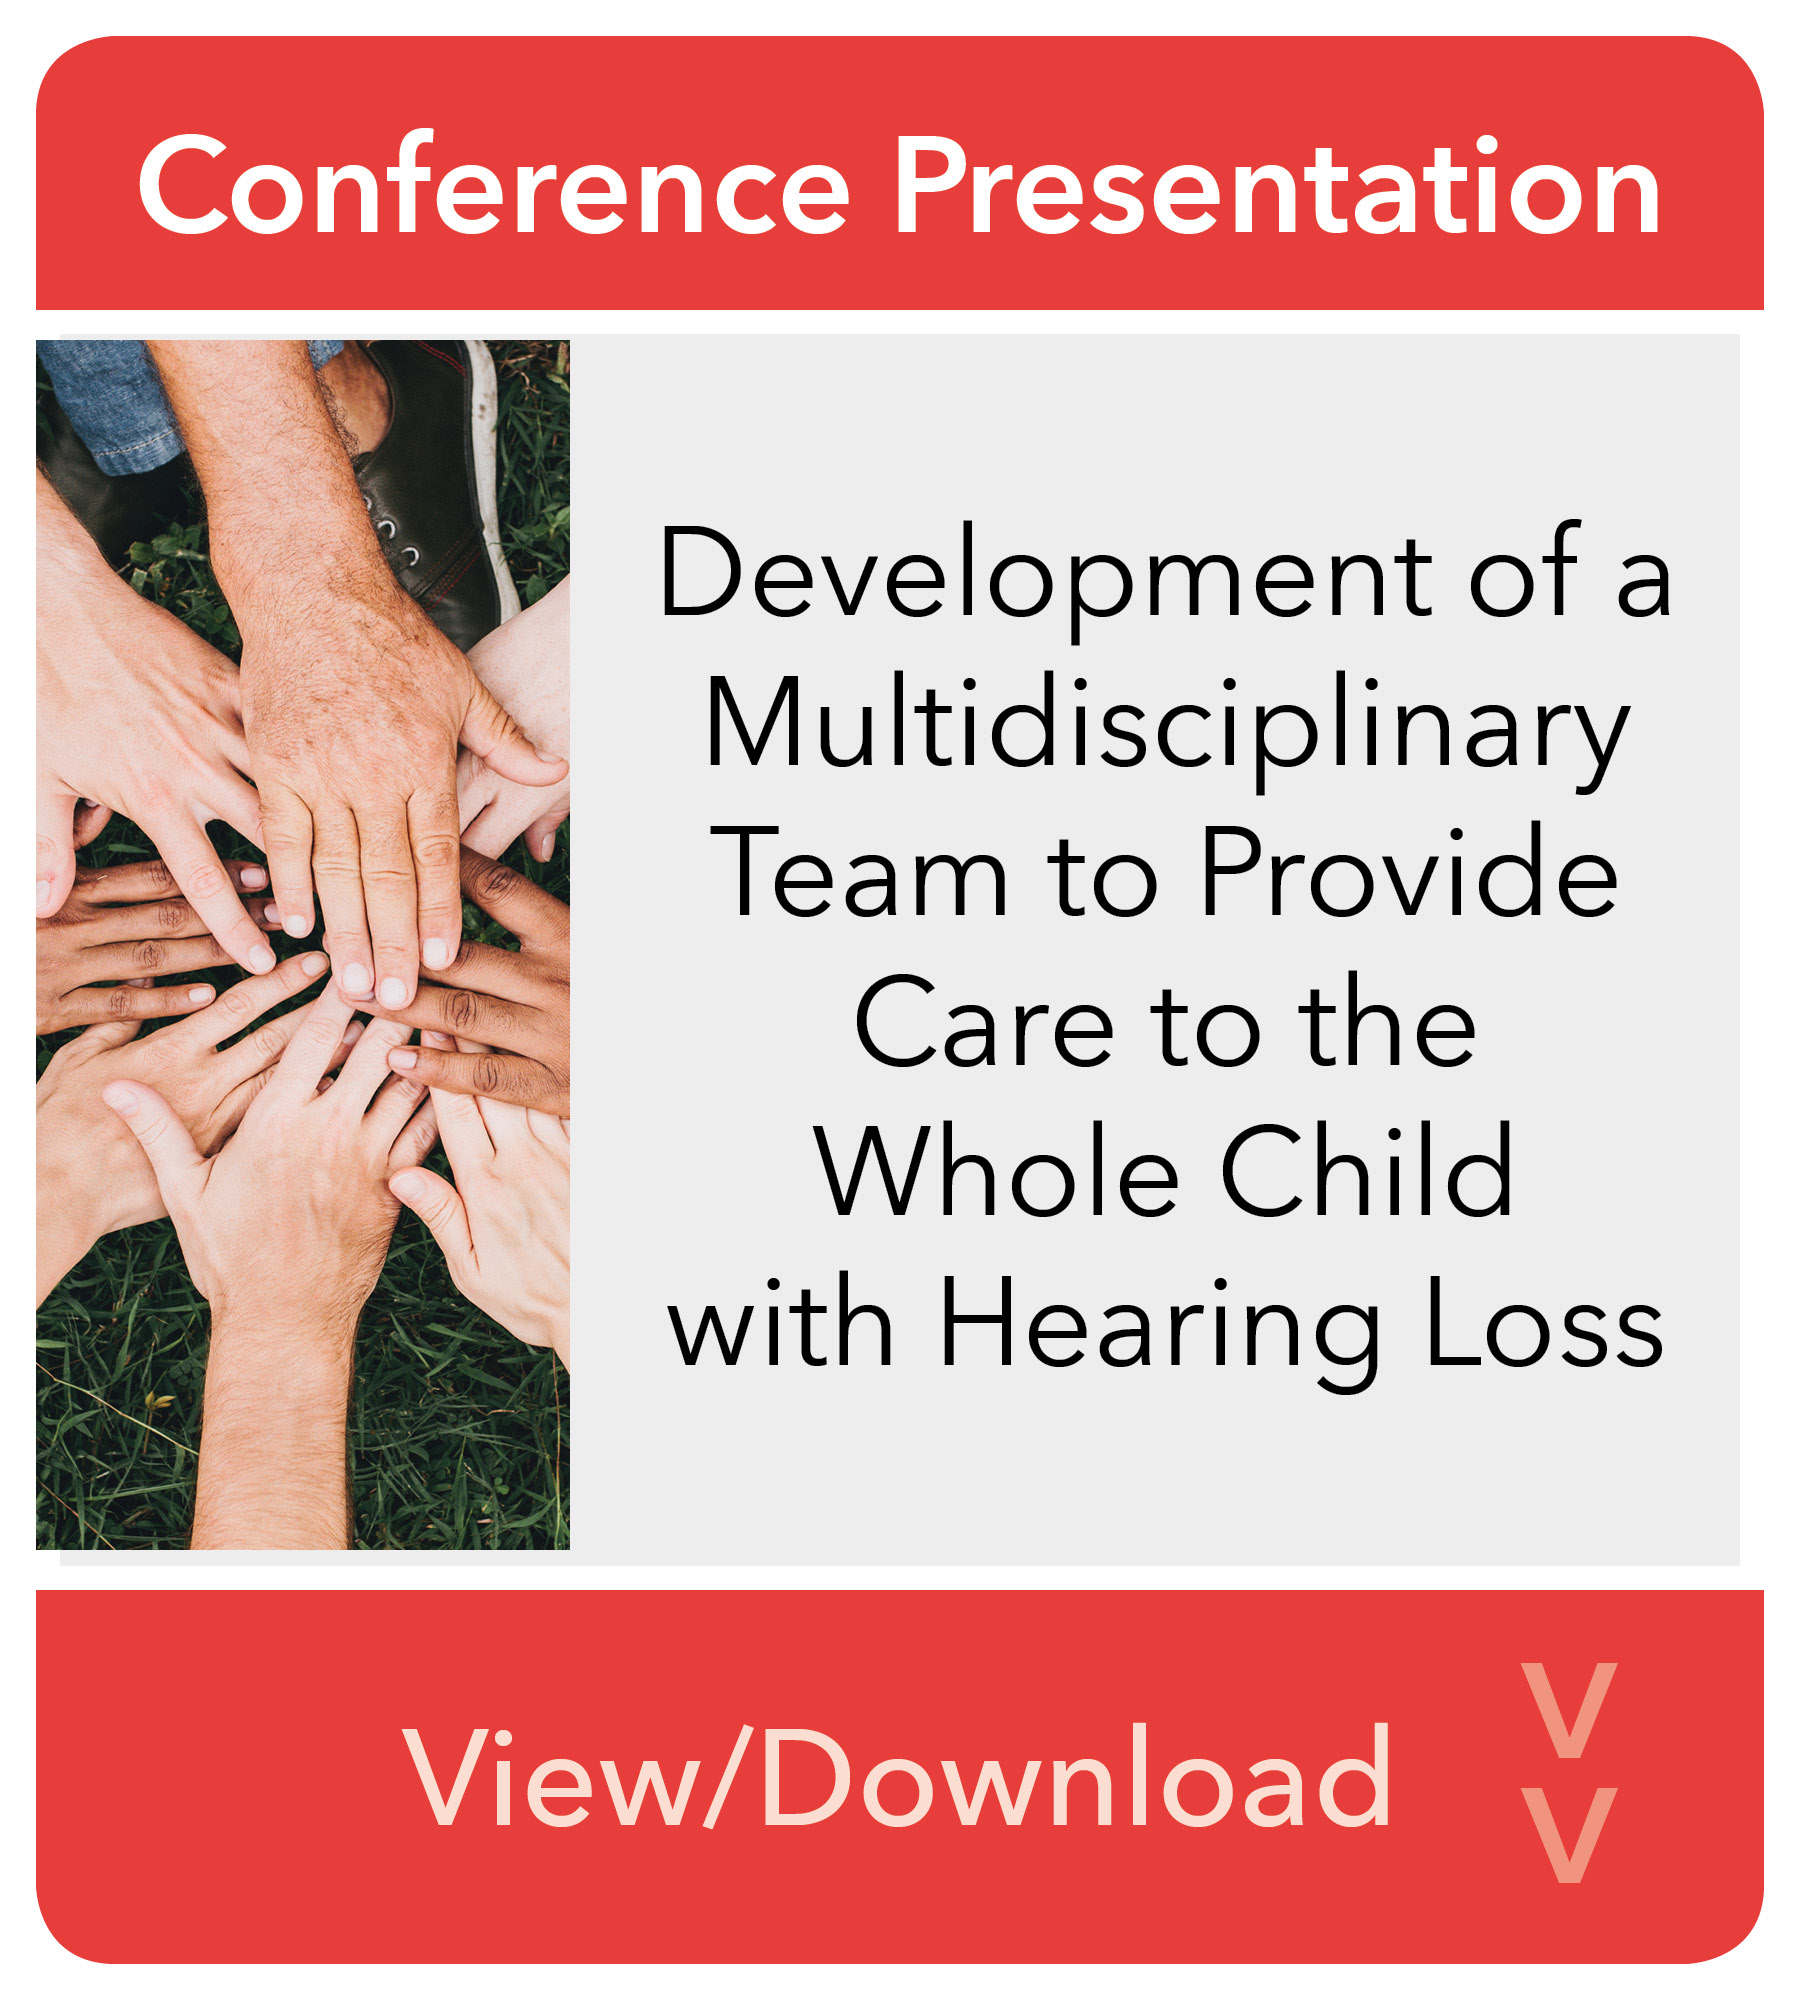 2019 Conference Presentations - American Society for Deaf Children